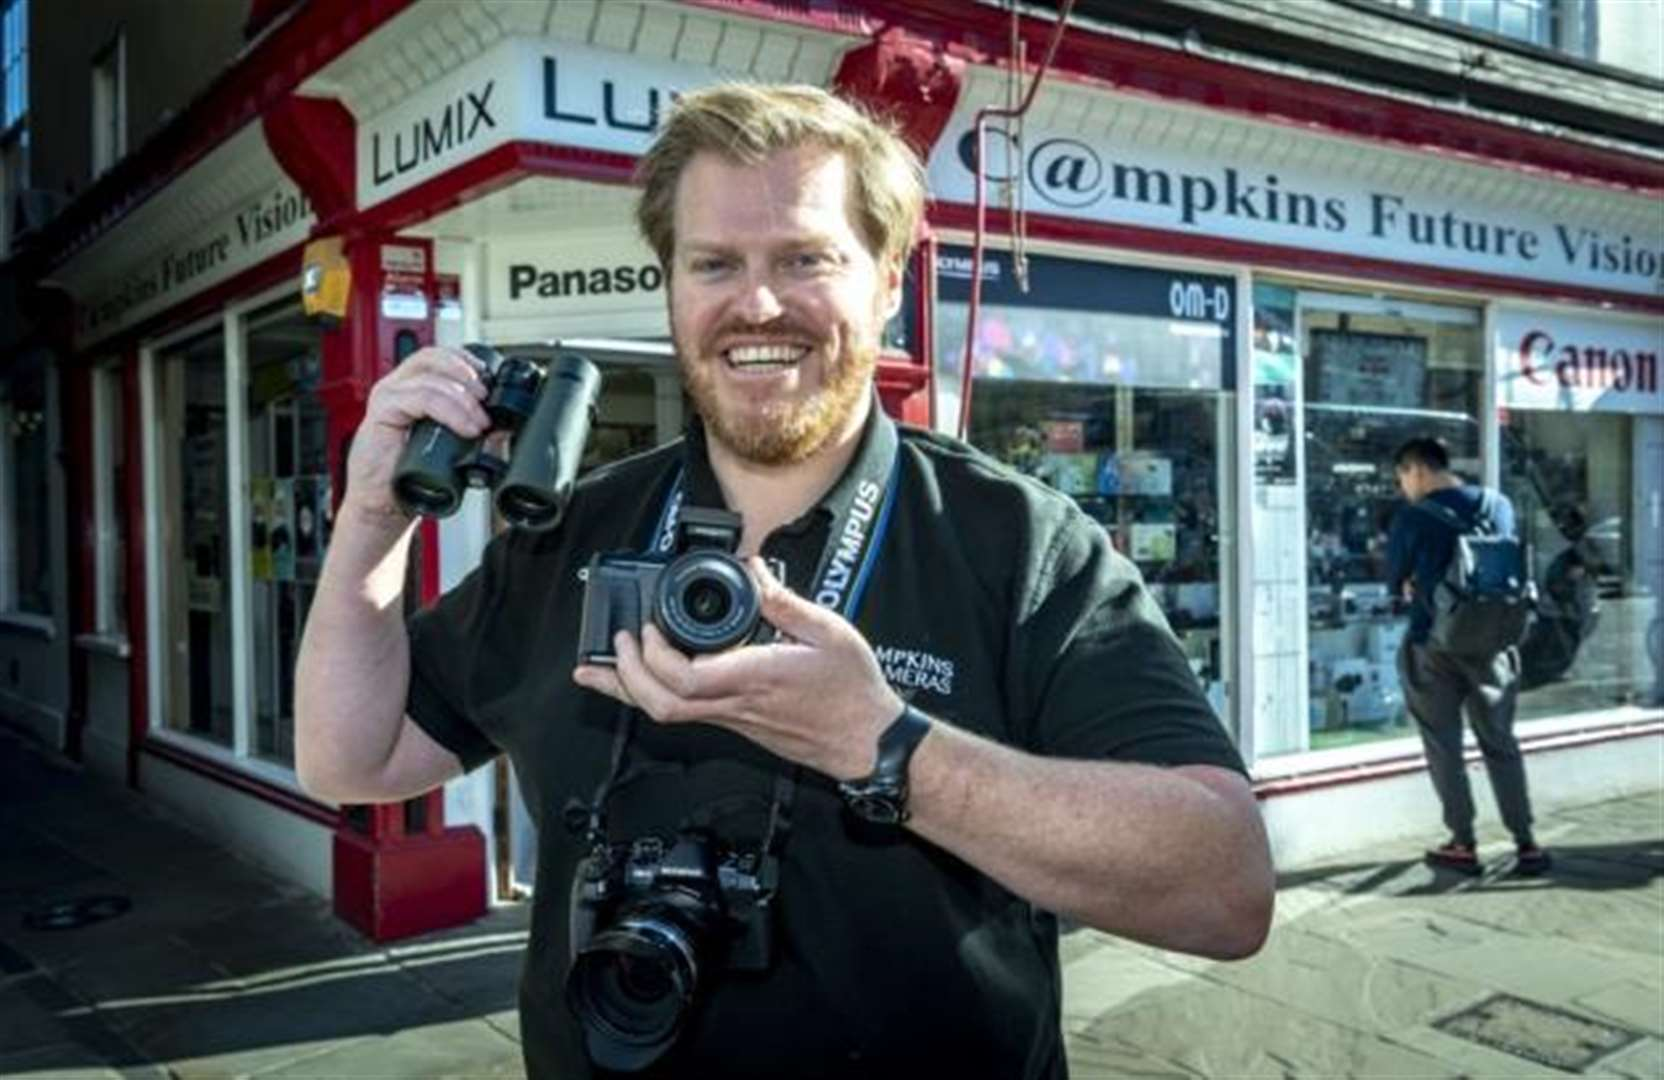 Hundreds expected at Campkins Cameras Photography and Optics Show in Milton